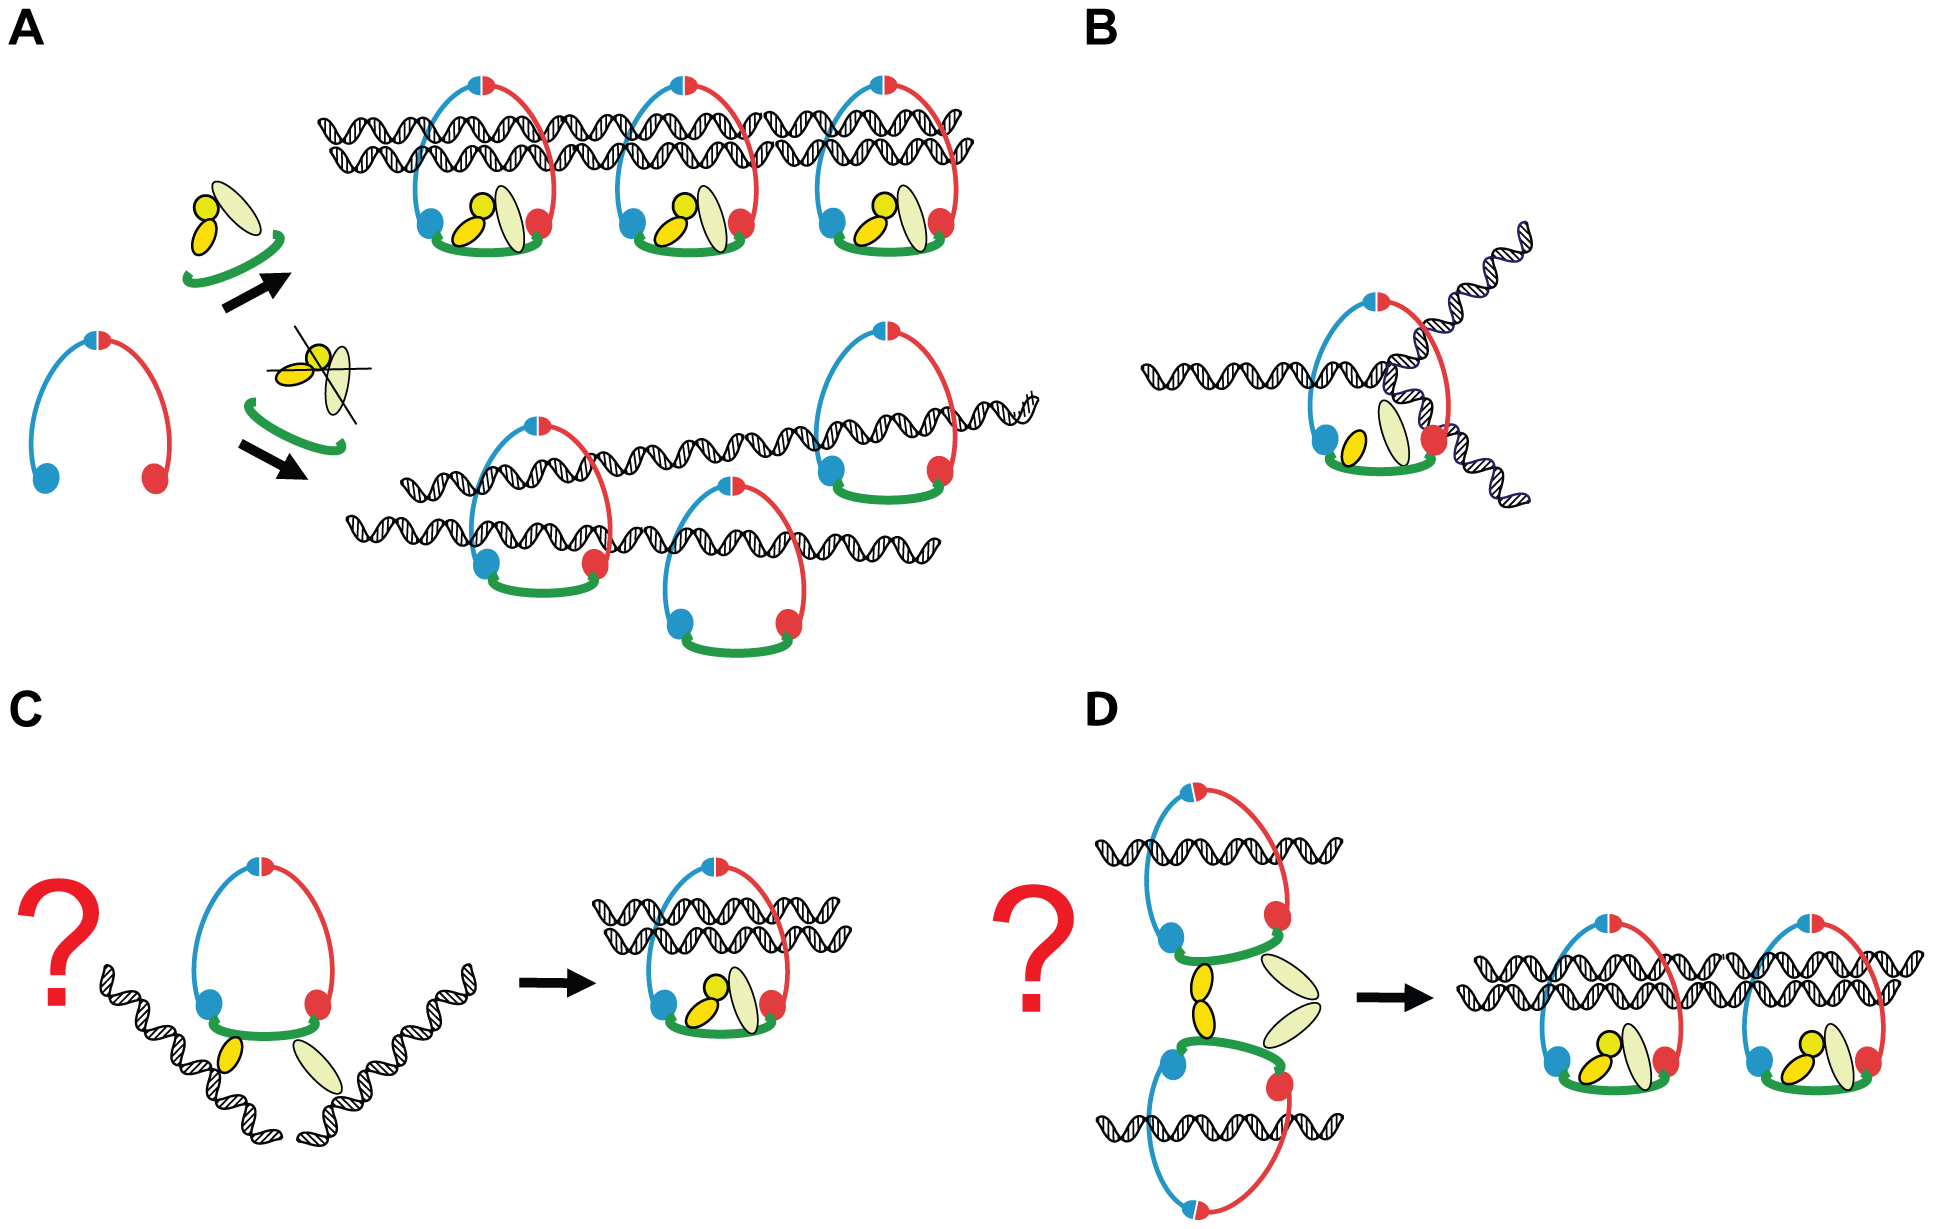 A model of how Scc3 and Pds5 play a role in the establishment of sister chromatid cohesion but are not required to stabilize cohesin rings on the DNA.